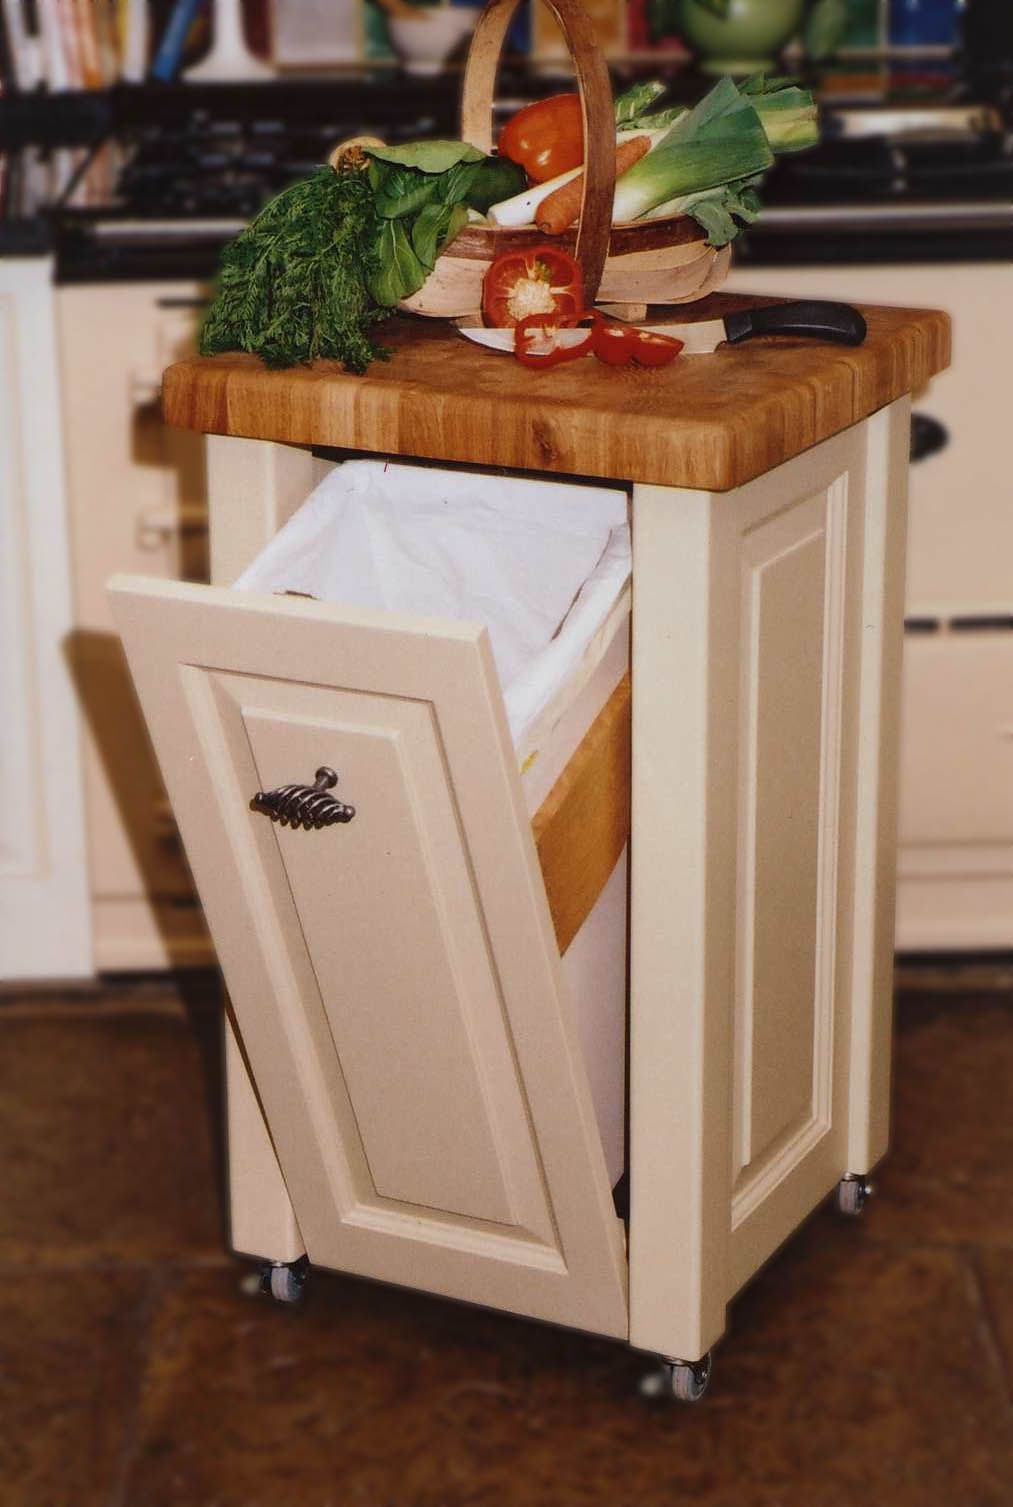 Small Kitchen Trash Cans 19 Unique Kitchen Island Ideas For Every Space And Budget Tables